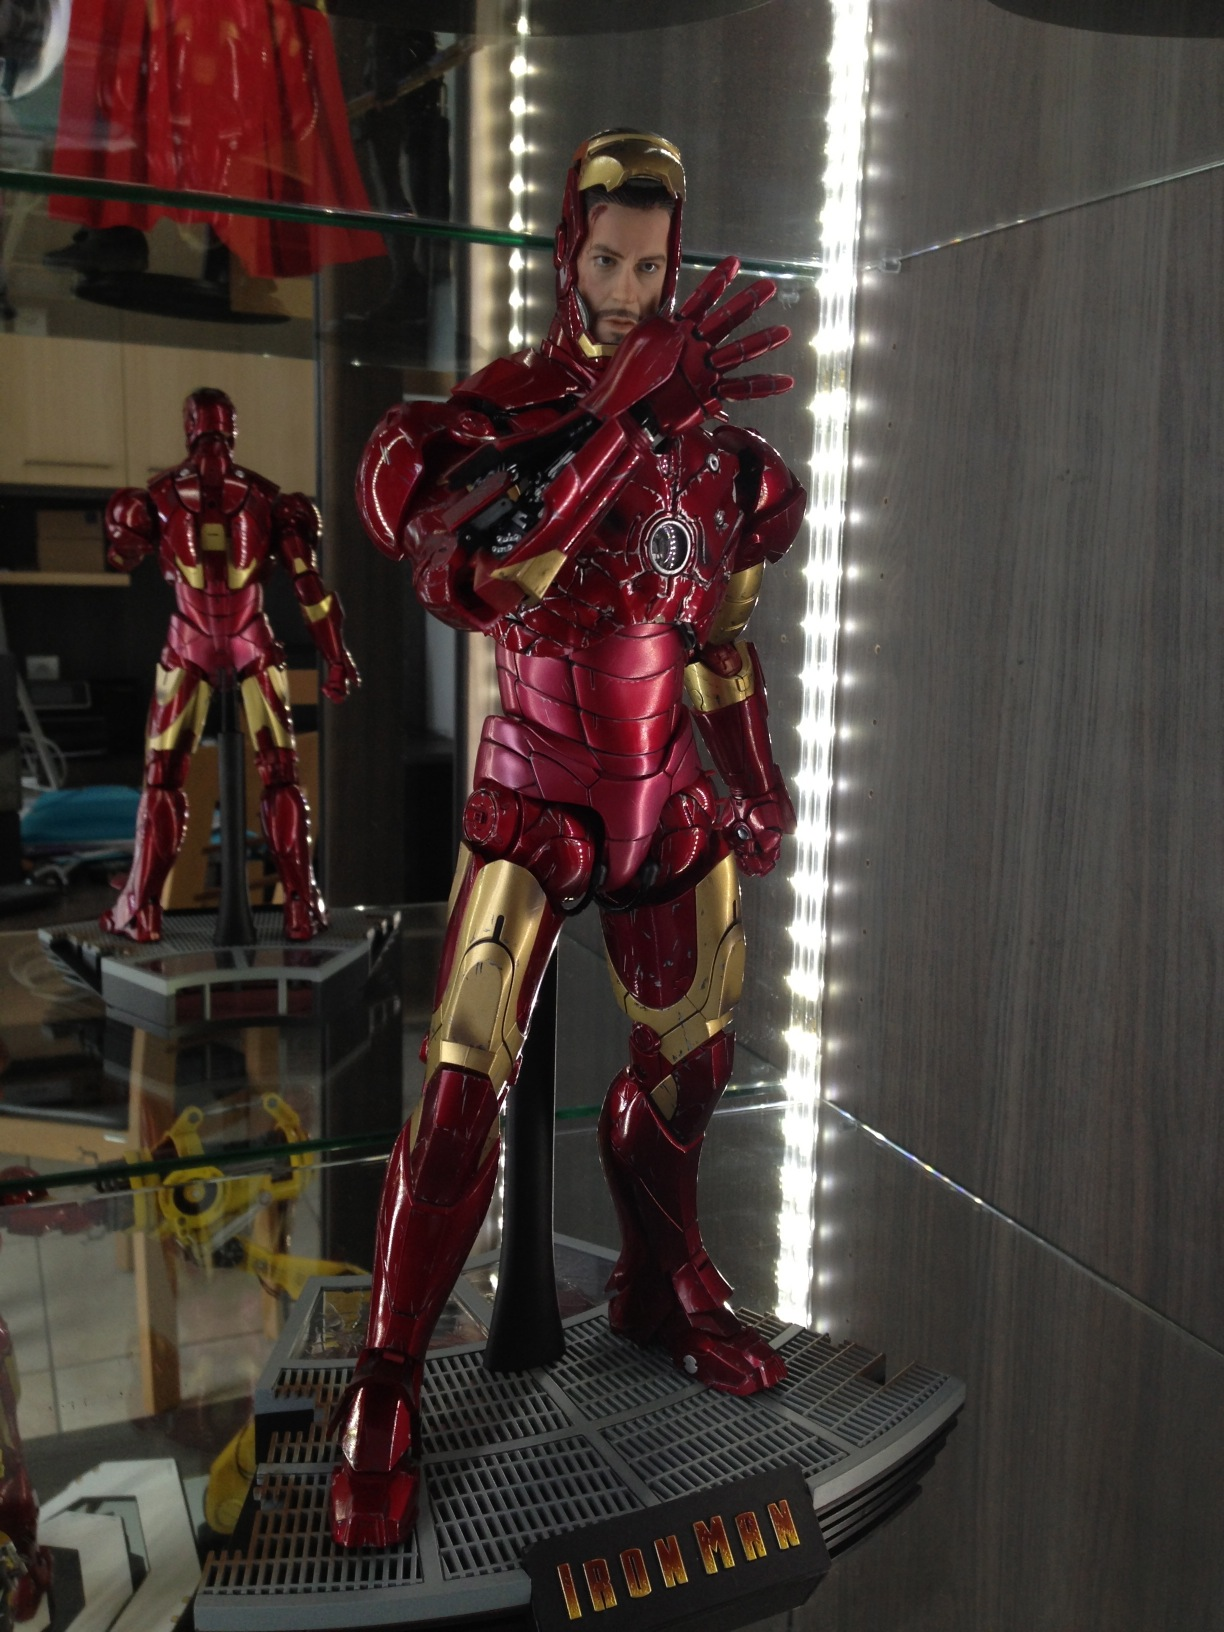 Scanjet784 - Collection Hot Toys - News page 3 - 1309231058379422611576307